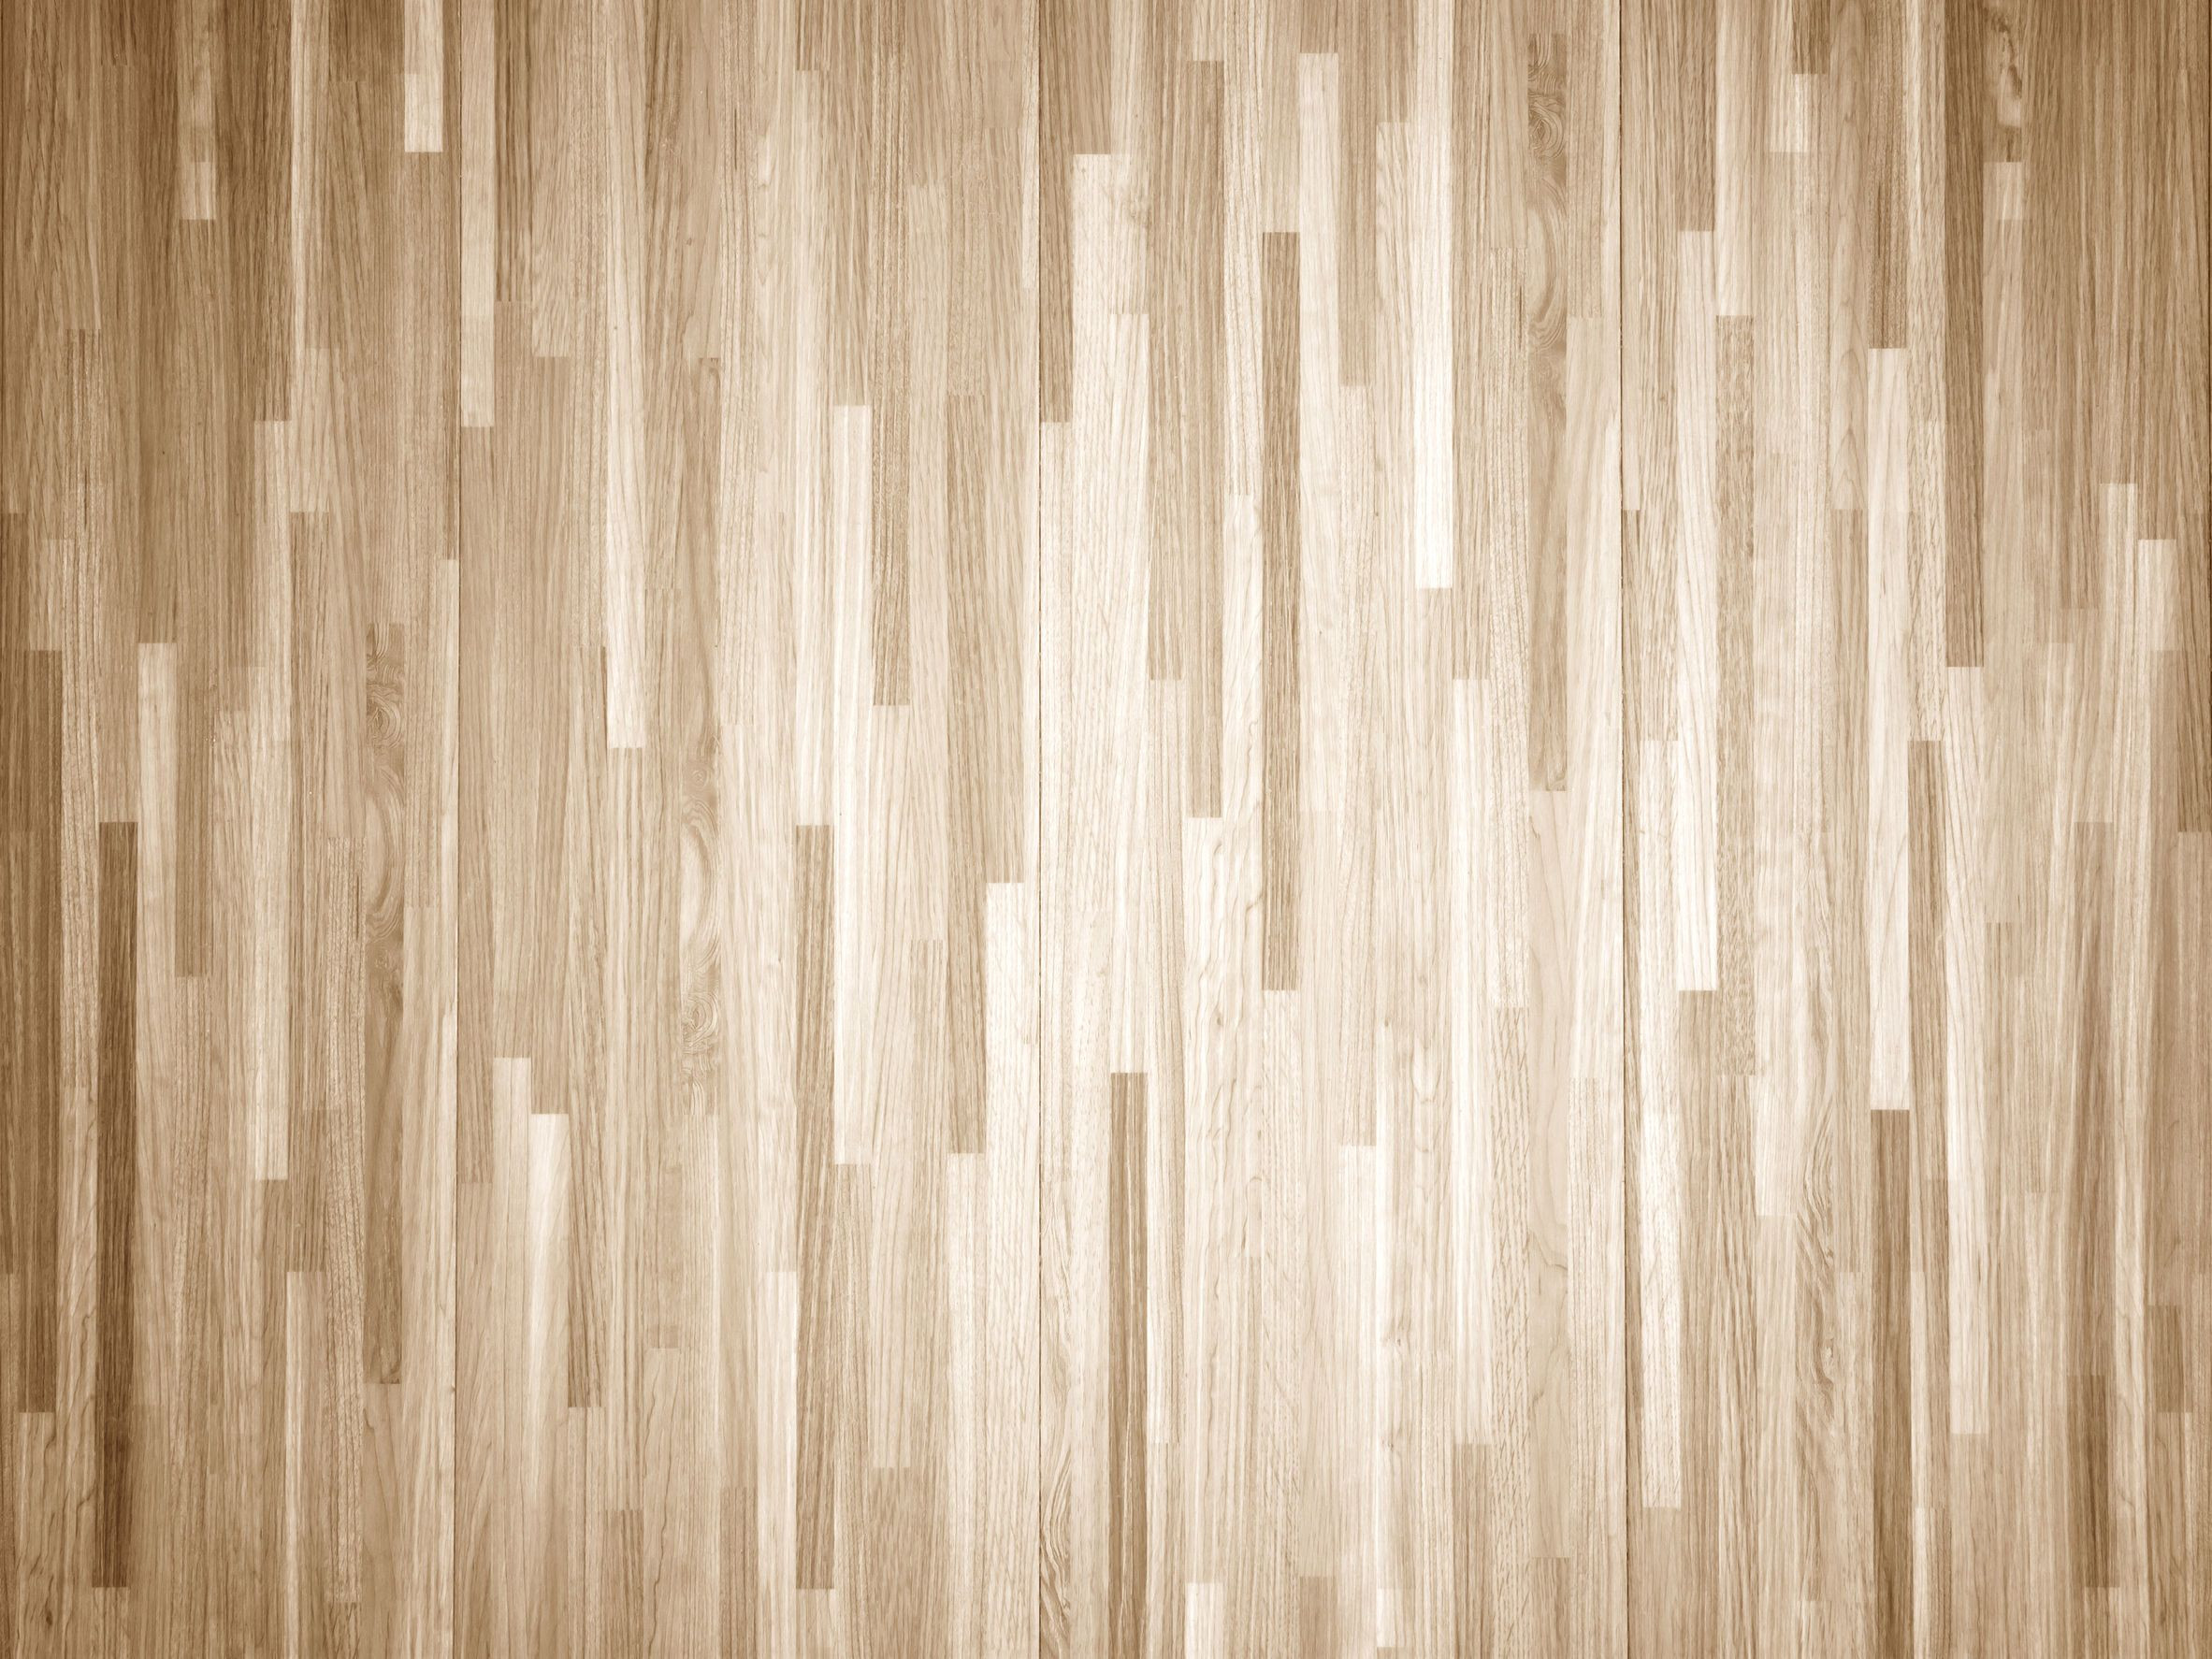 bamboo hardwood flooring reviews of how to chemically strip wood floors woodfloordoctor com throughout you